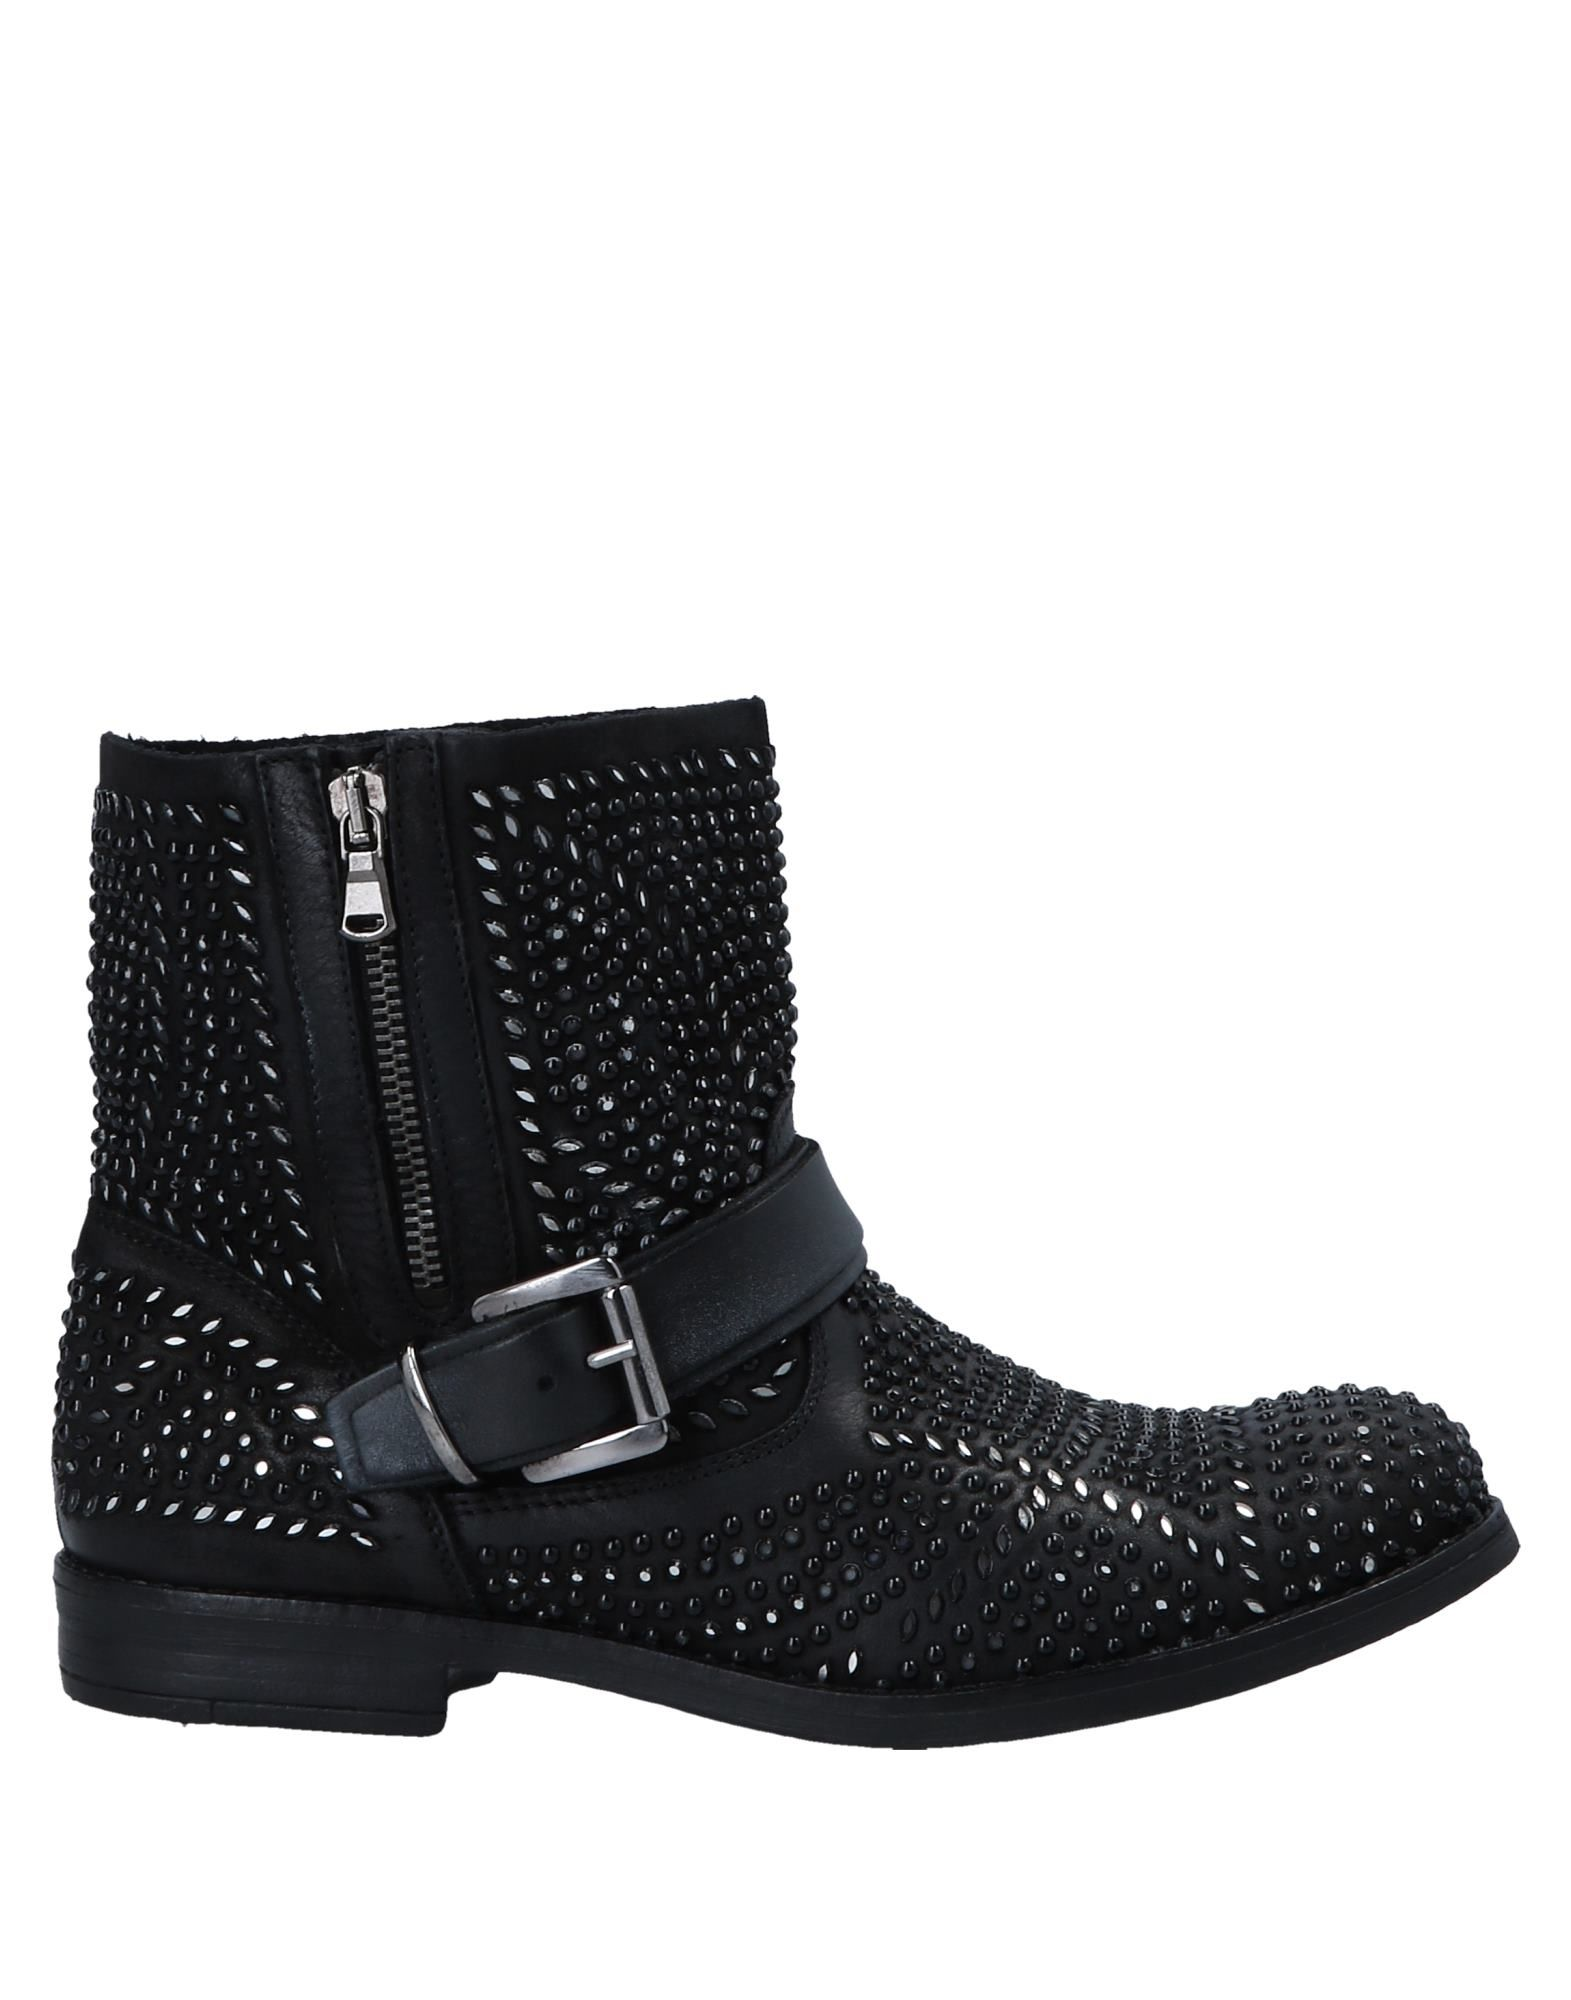 Metisse Ankle Boot - Women Metisse Ankle Boots online 11545801OD on  Australia - 11545801OD online 4cf86a